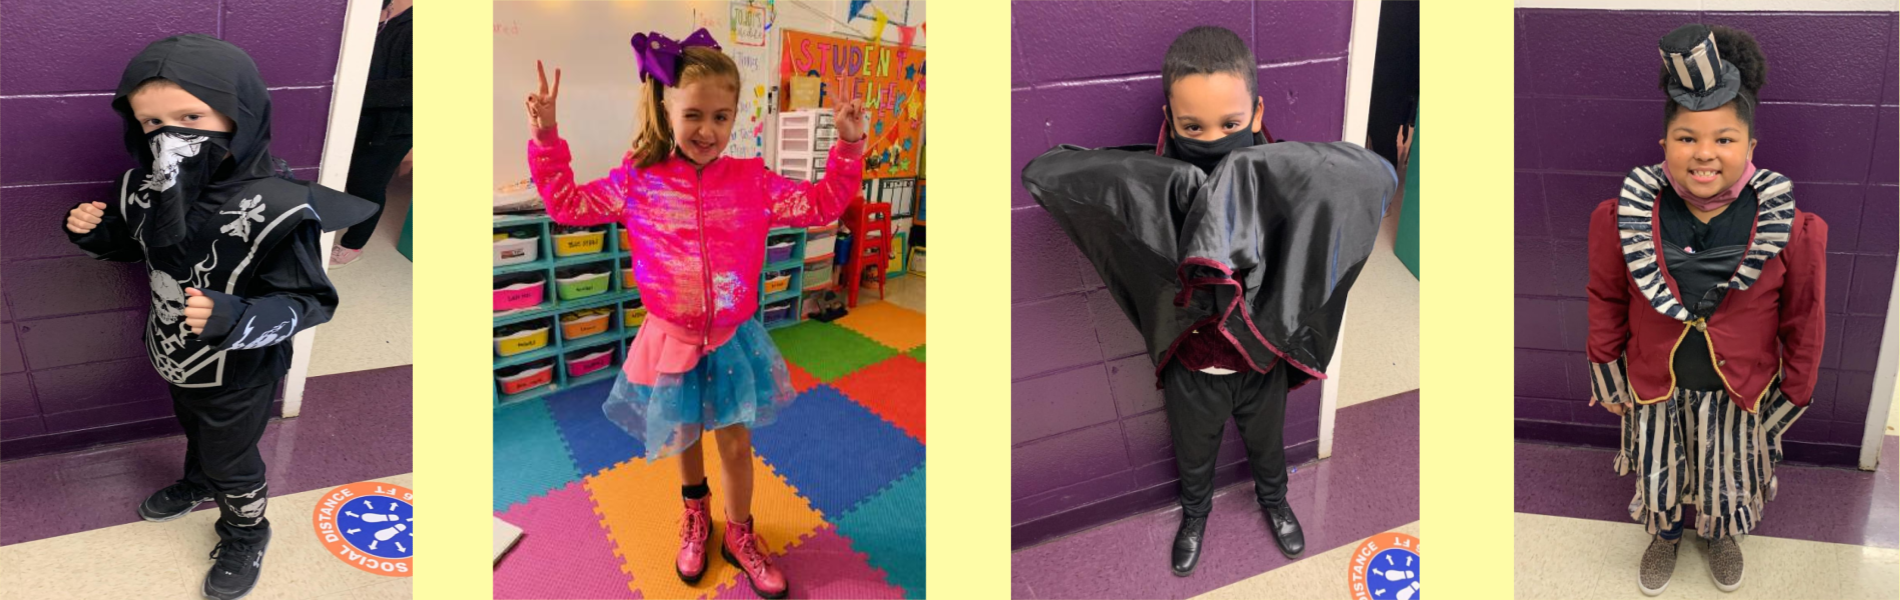 Students dressed in costumes for Red Ribbon Week